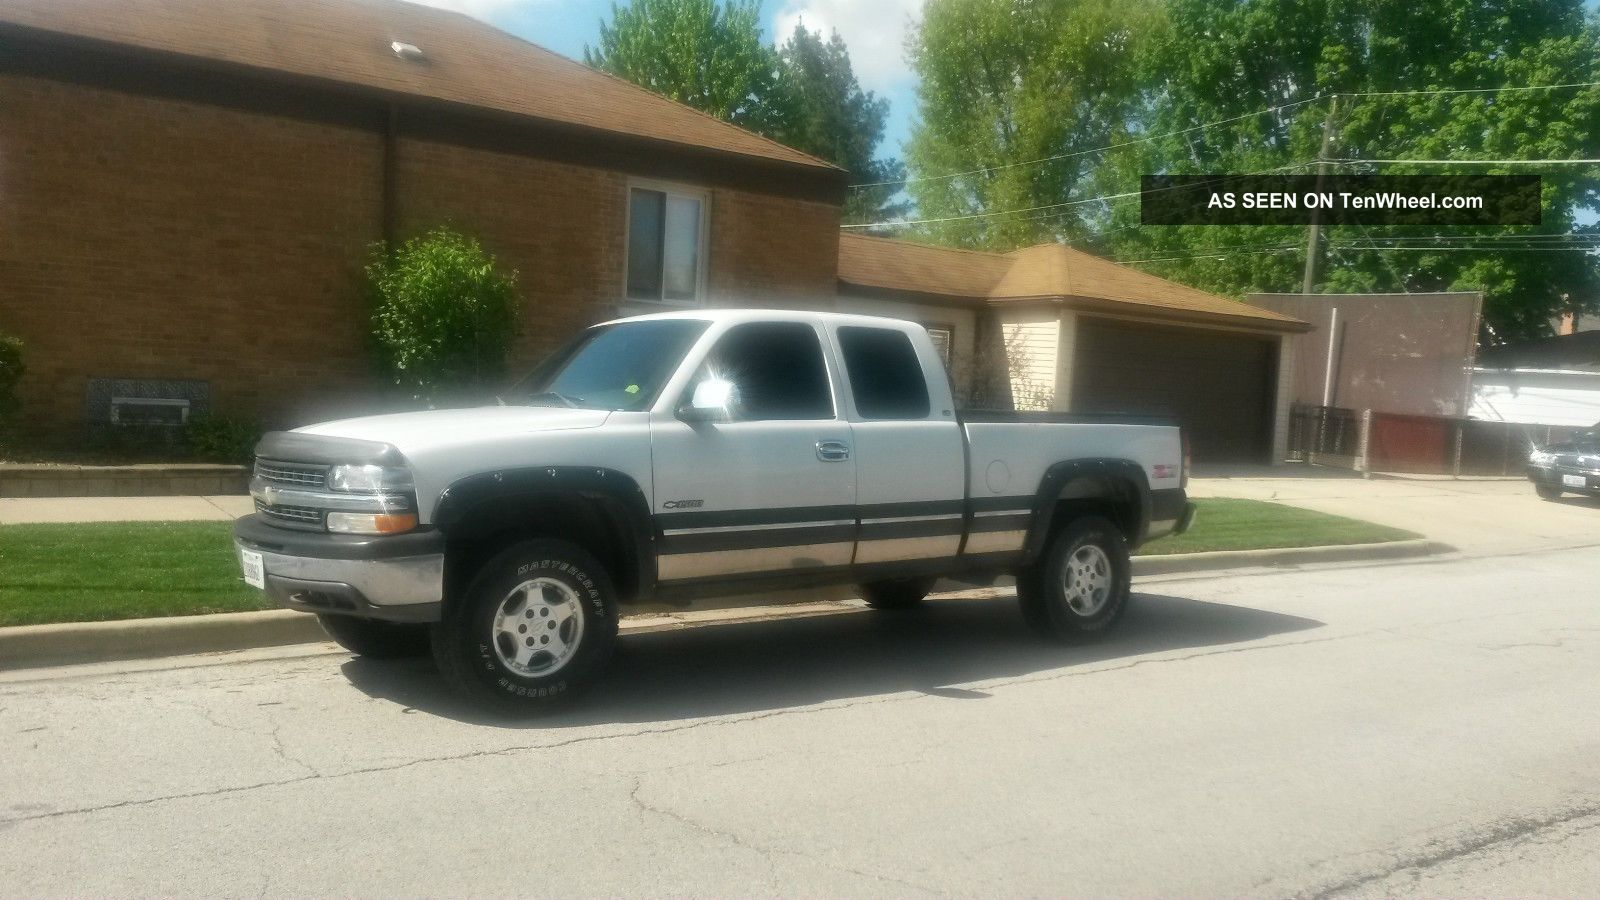 2000 chevy silverado 1500 ext cab 4x4. Black Bedroom Furniture Sets. Home Design Ideas